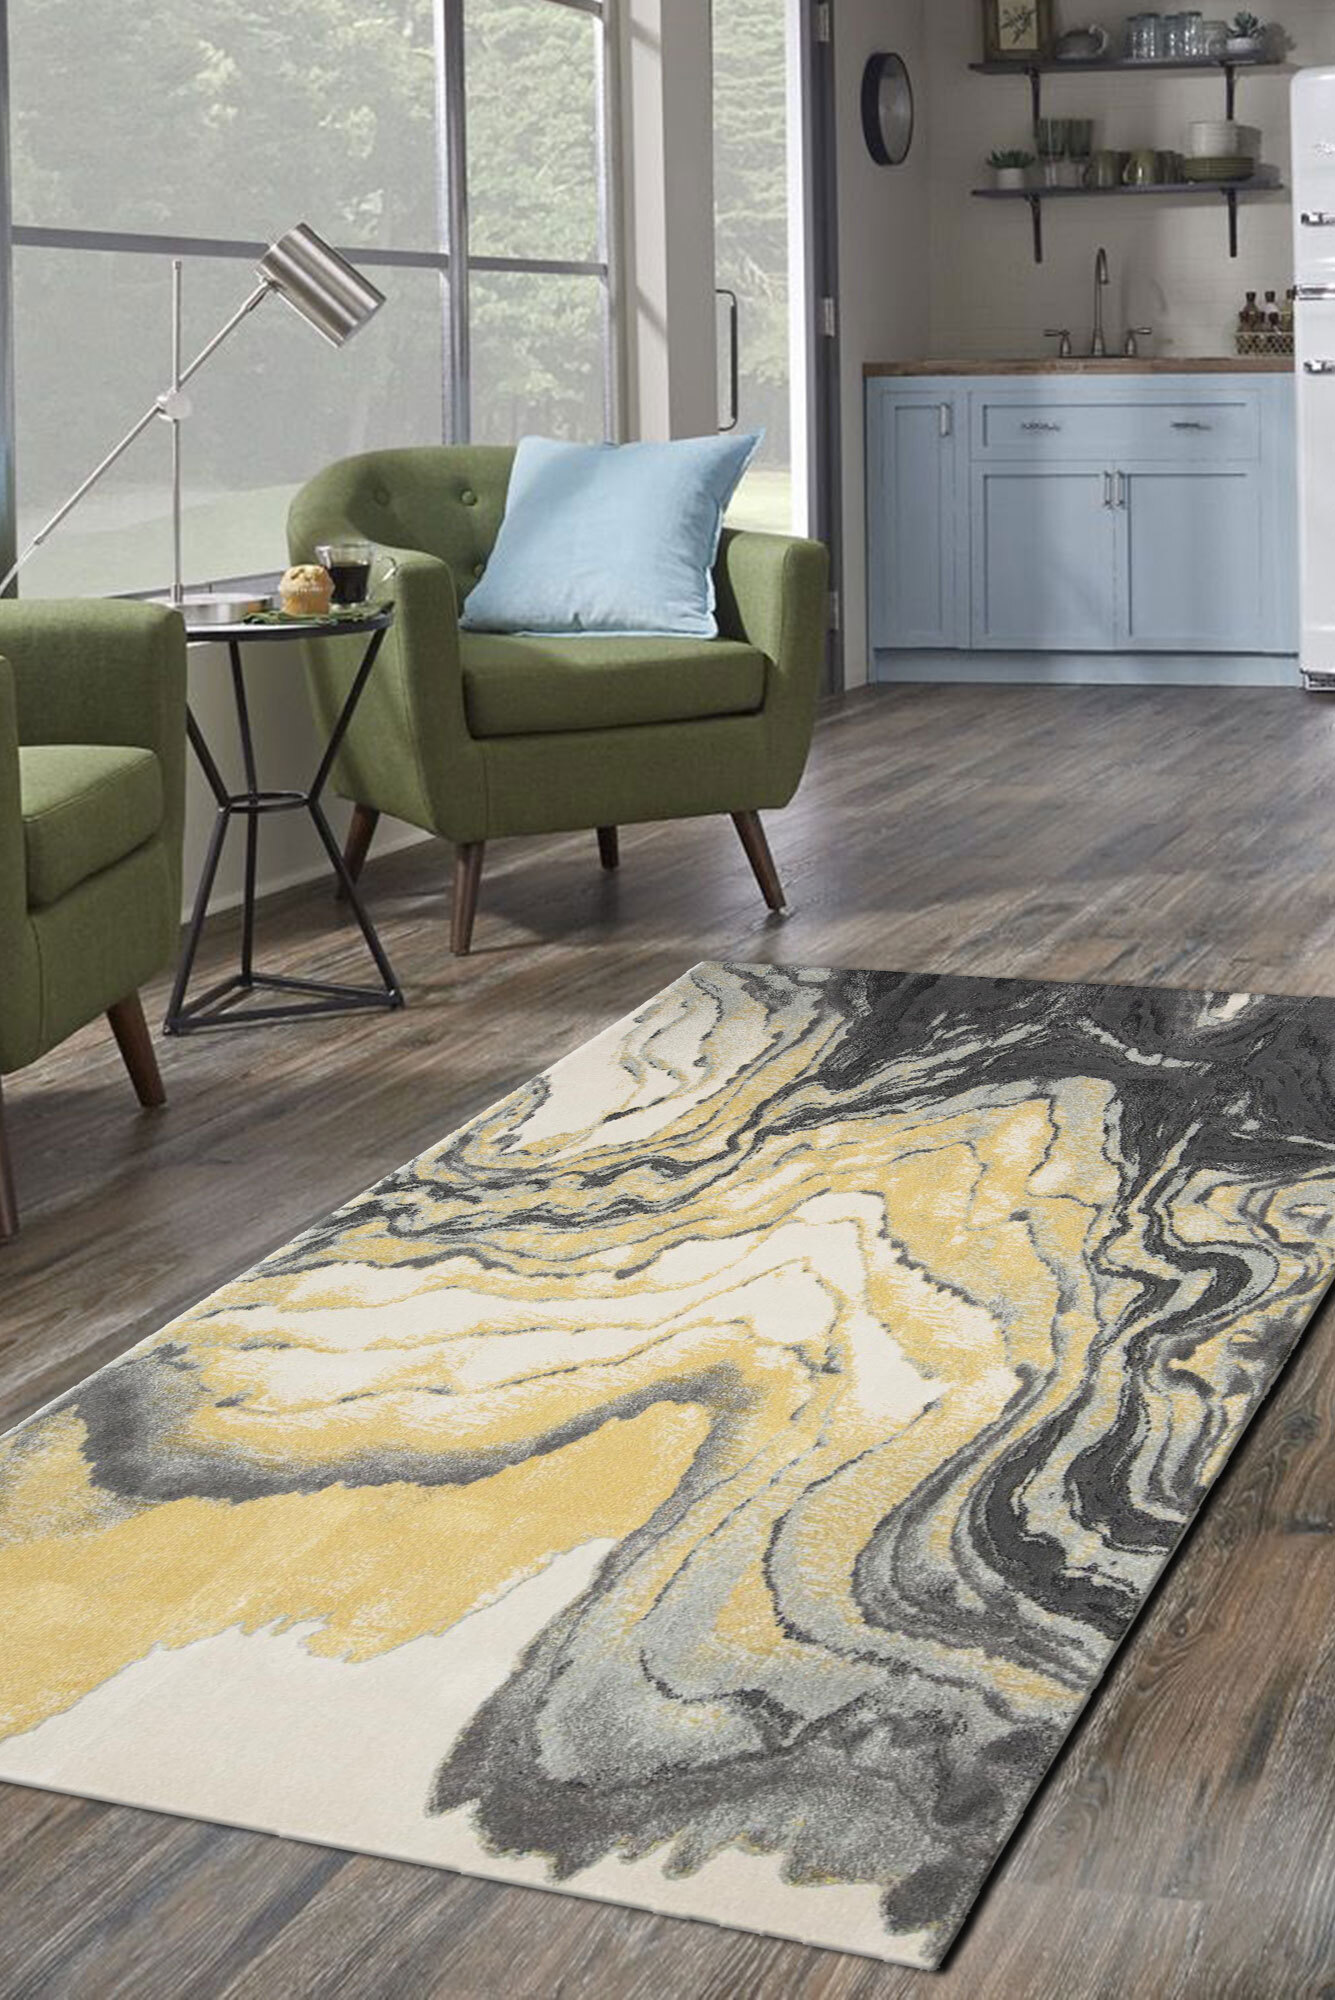 Roma Yellow Modern Abstract Rug(Size 170 x 120cm)